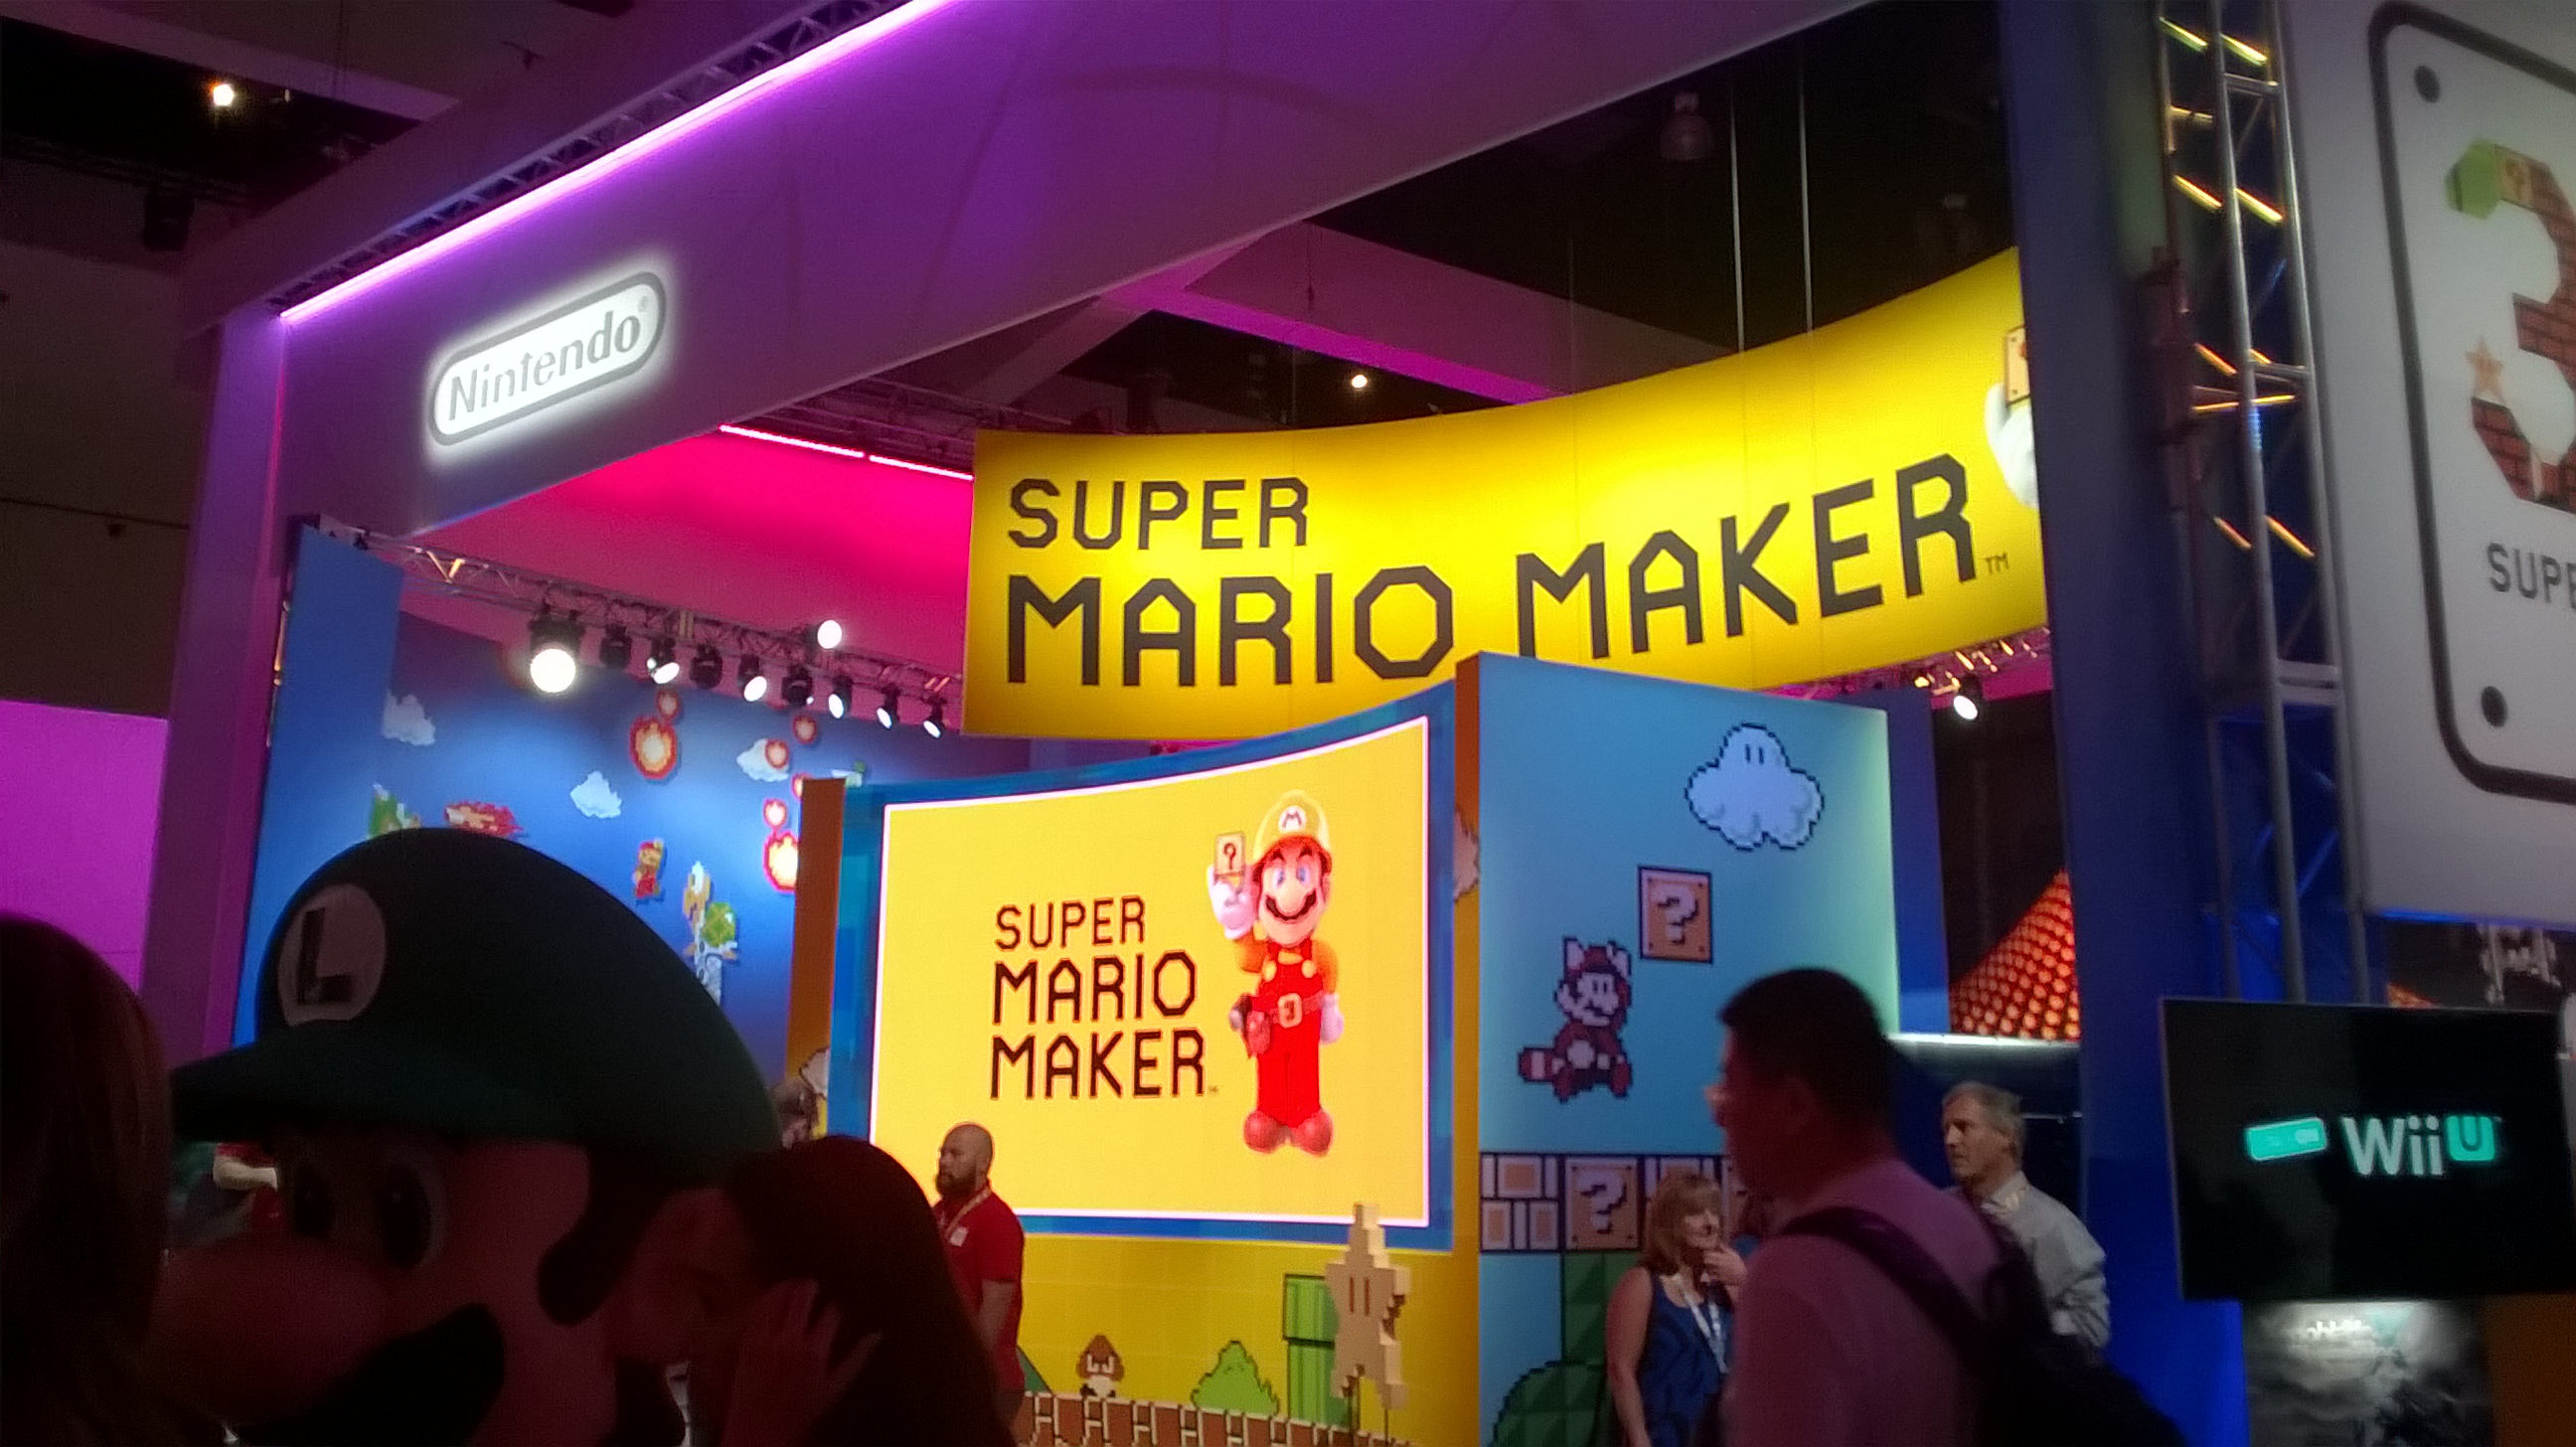 'Super Mario Maker' – A win for epic nostalgia